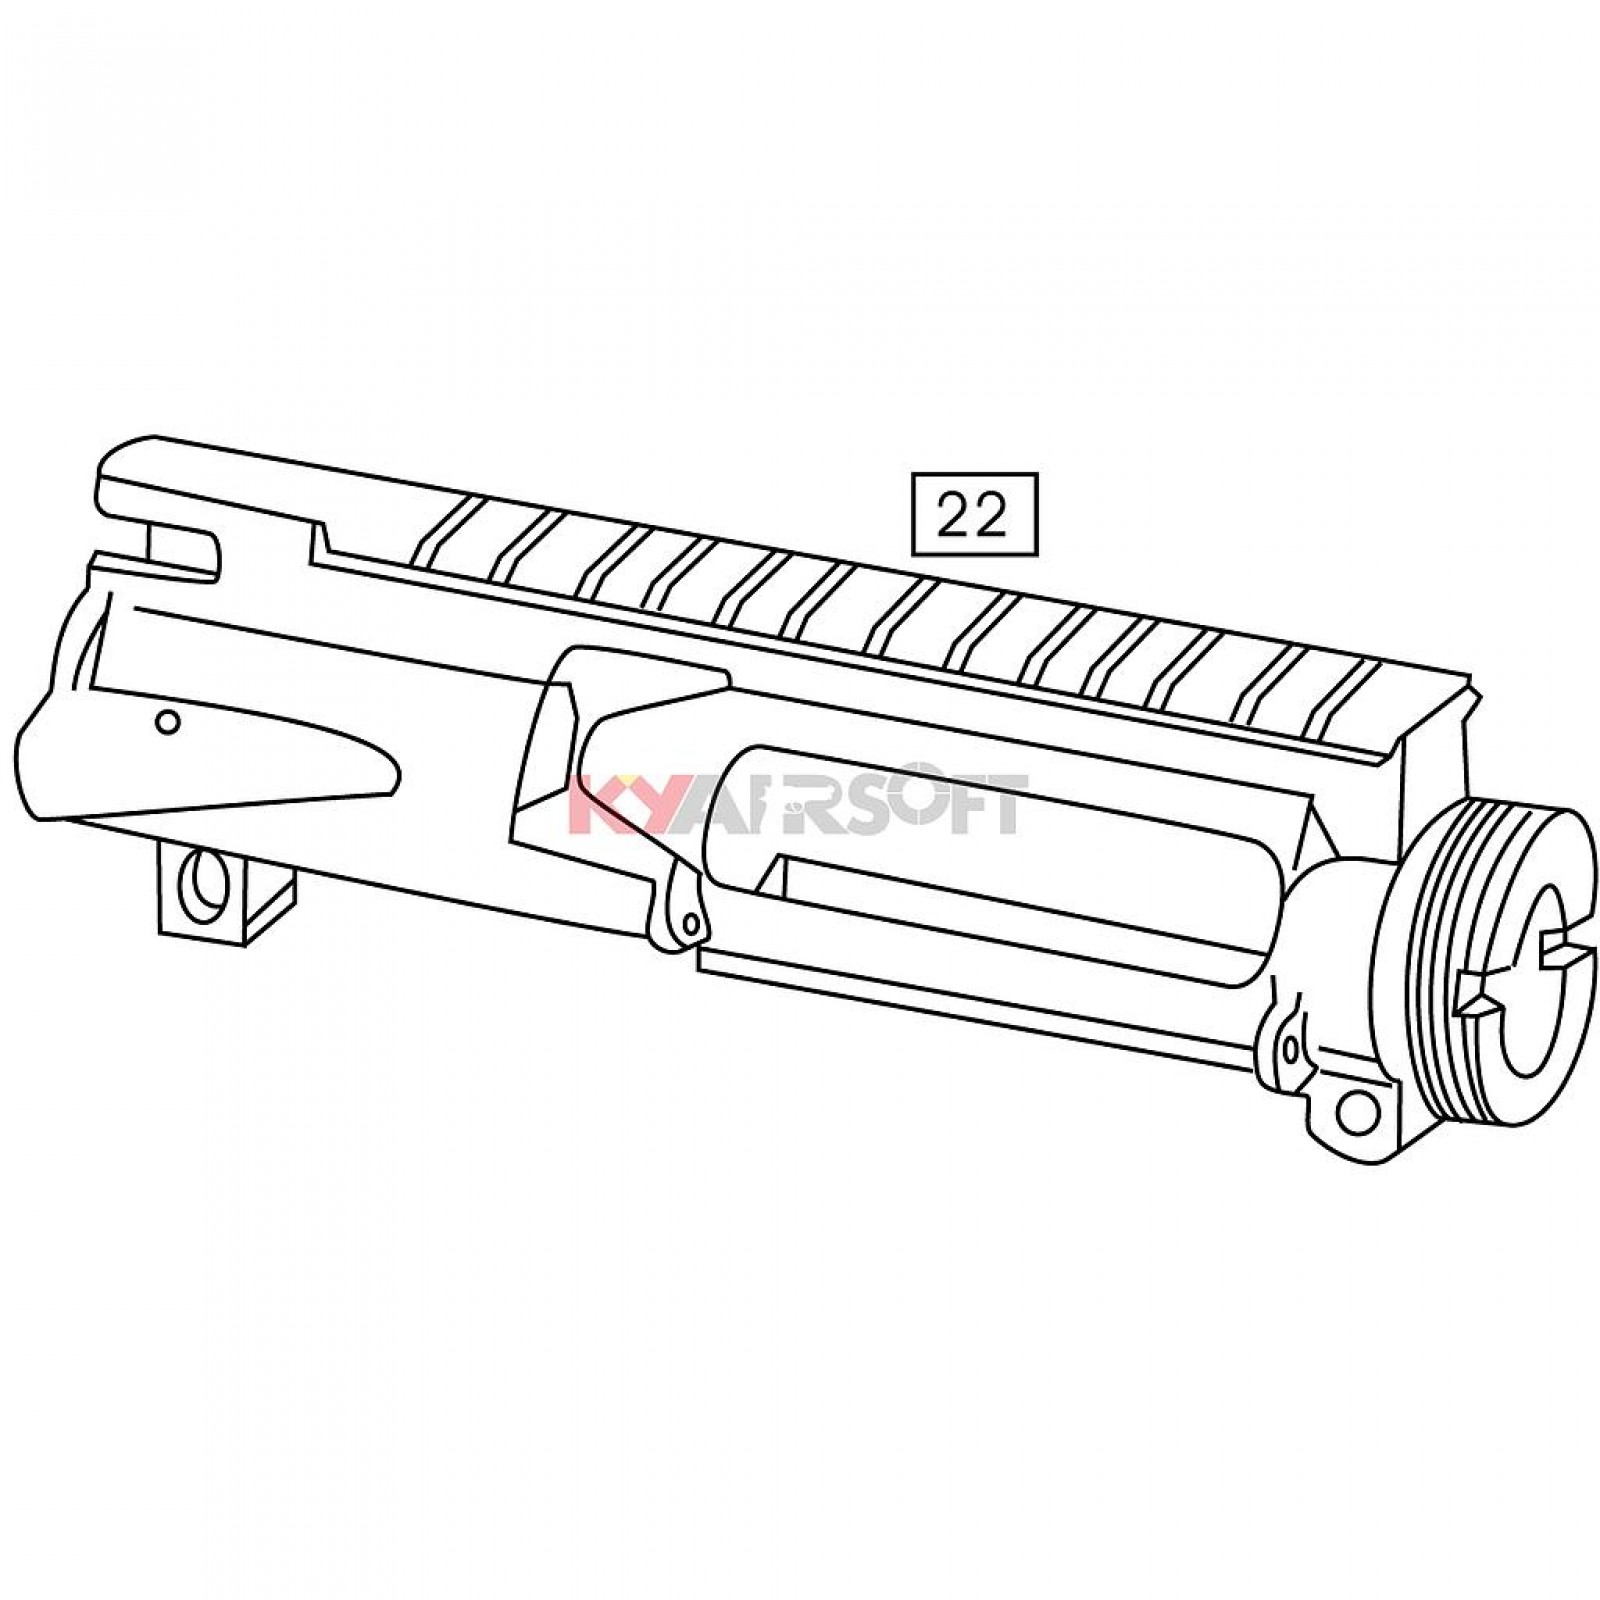 M4 22 Upper Receiver Gbbr Bk